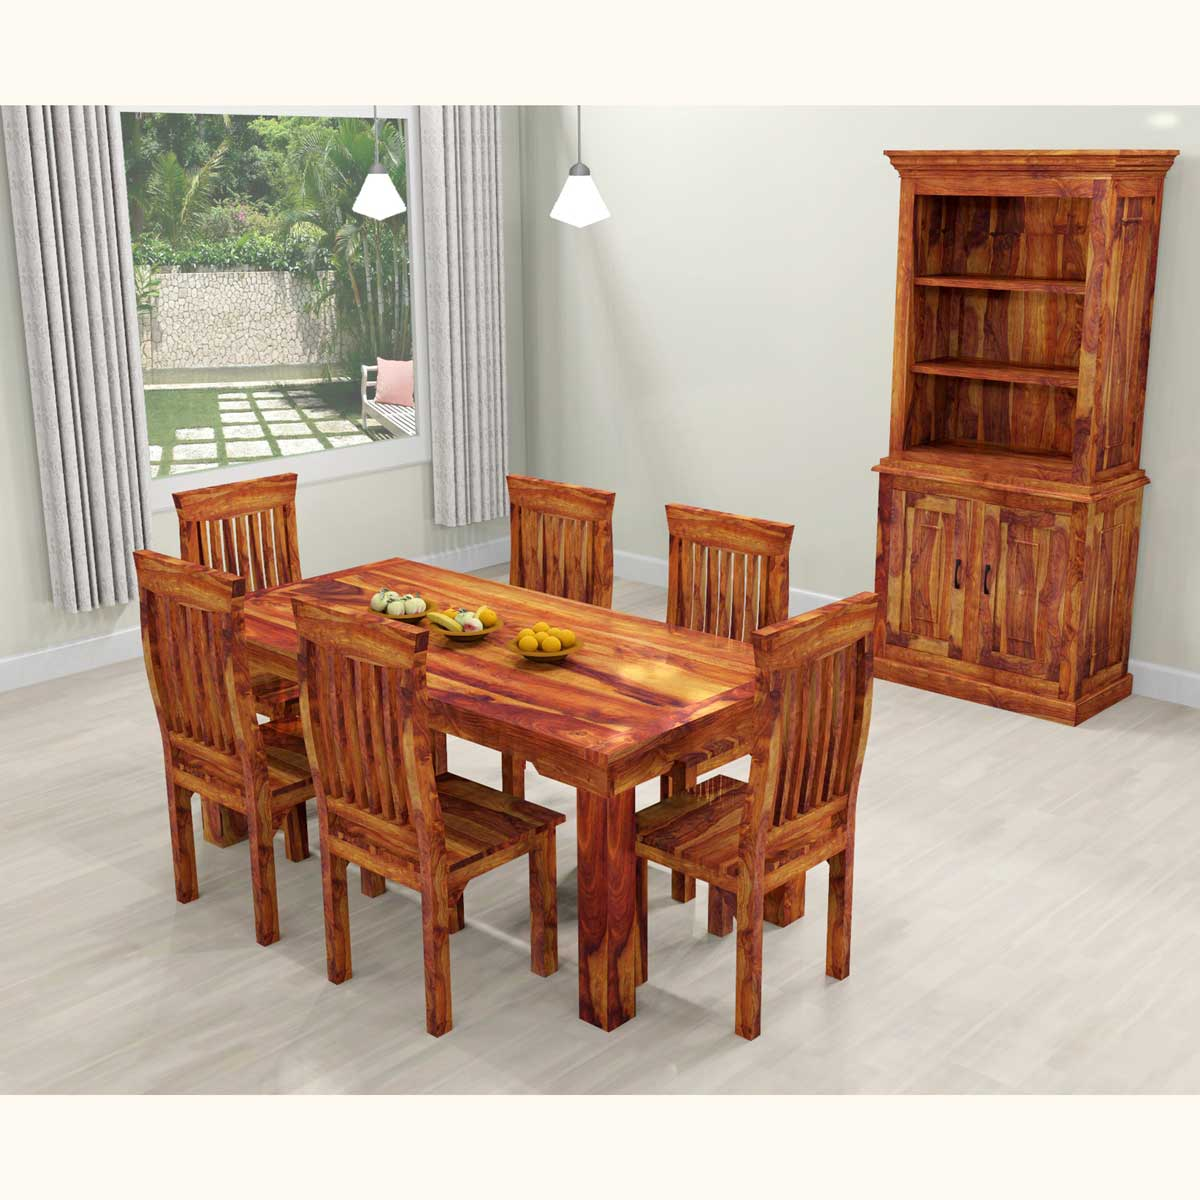 Dallas ranch solid wood rustic dining table chairs hutch set Dining room furniture dallas